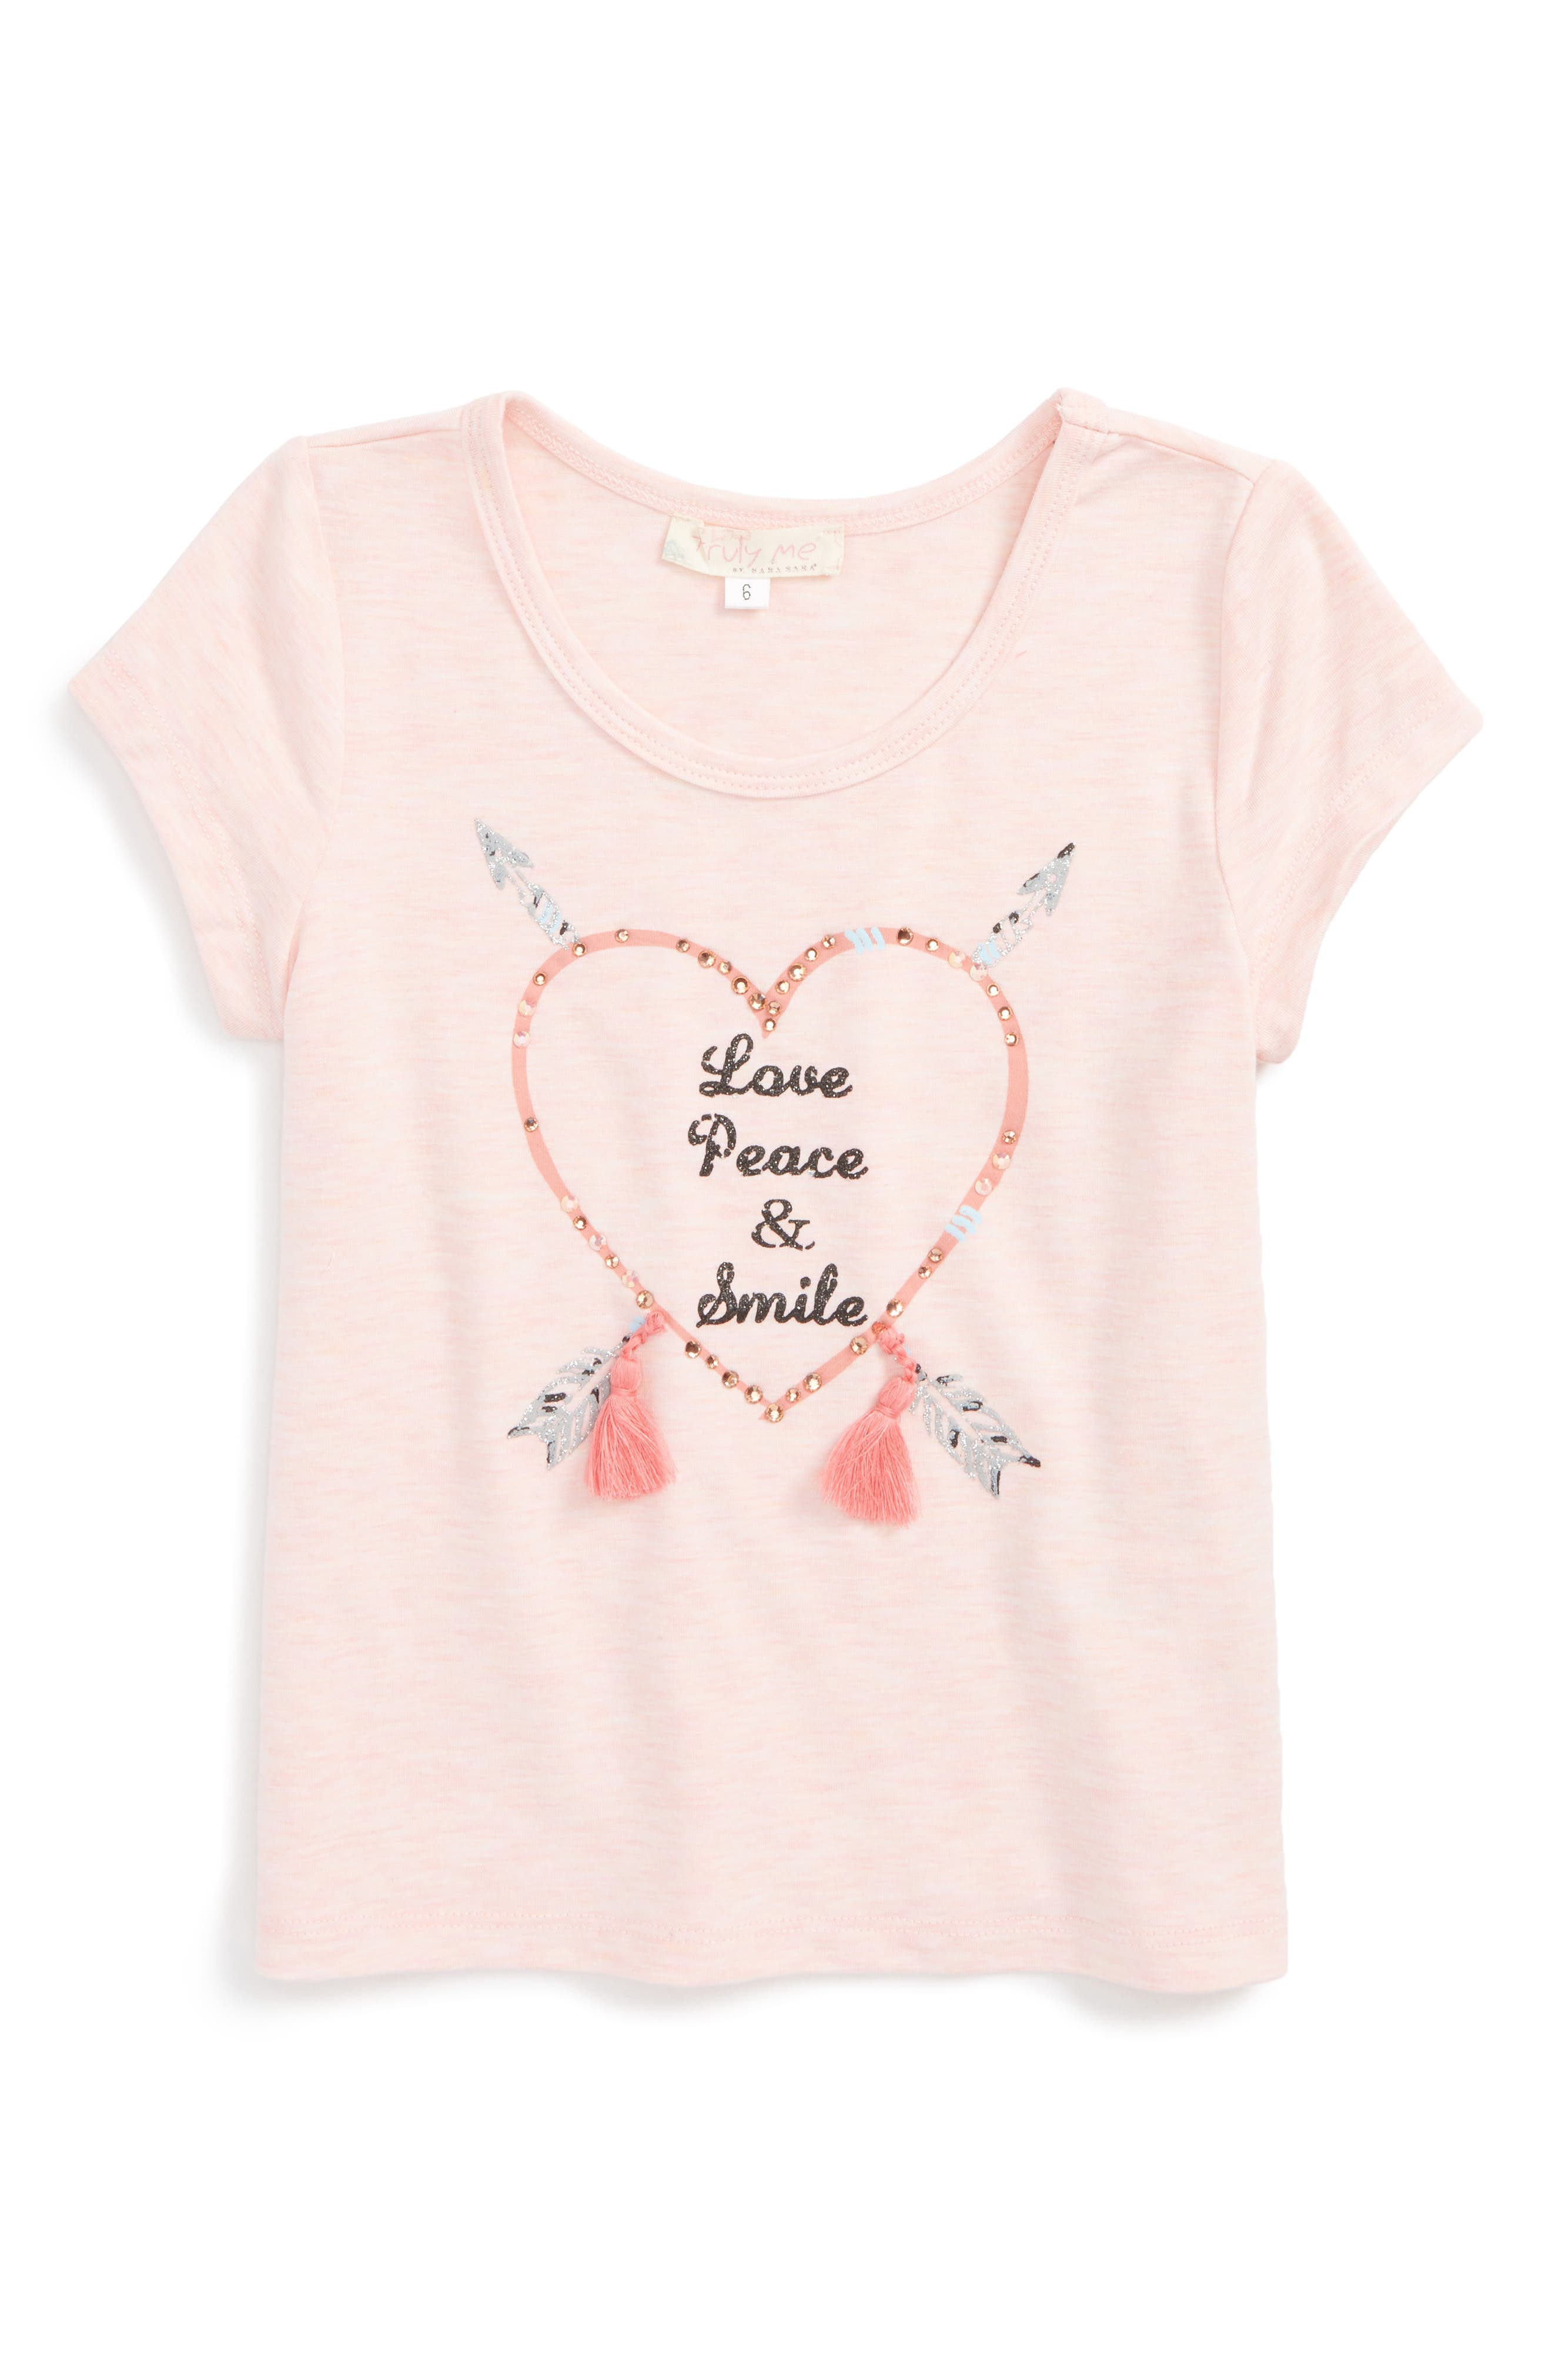 Truly Me Love, Peace, Smile Embellished Graphic Tee (Toddler Girls & Little Girls)